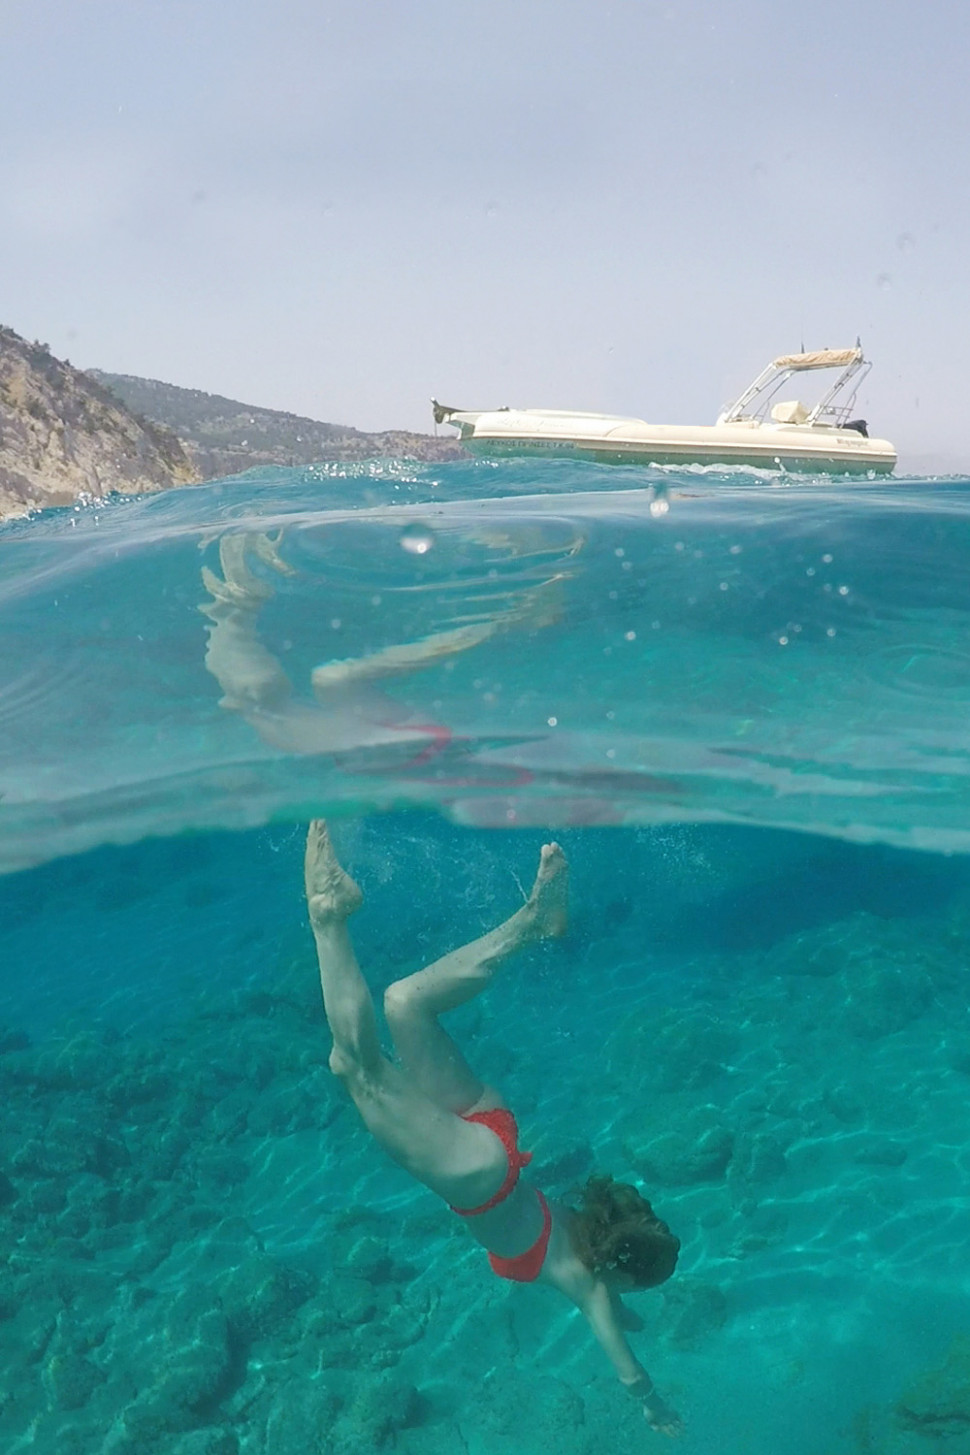 Greece's hidden gem: karpathos beaches, what to see and more - food recipes in english